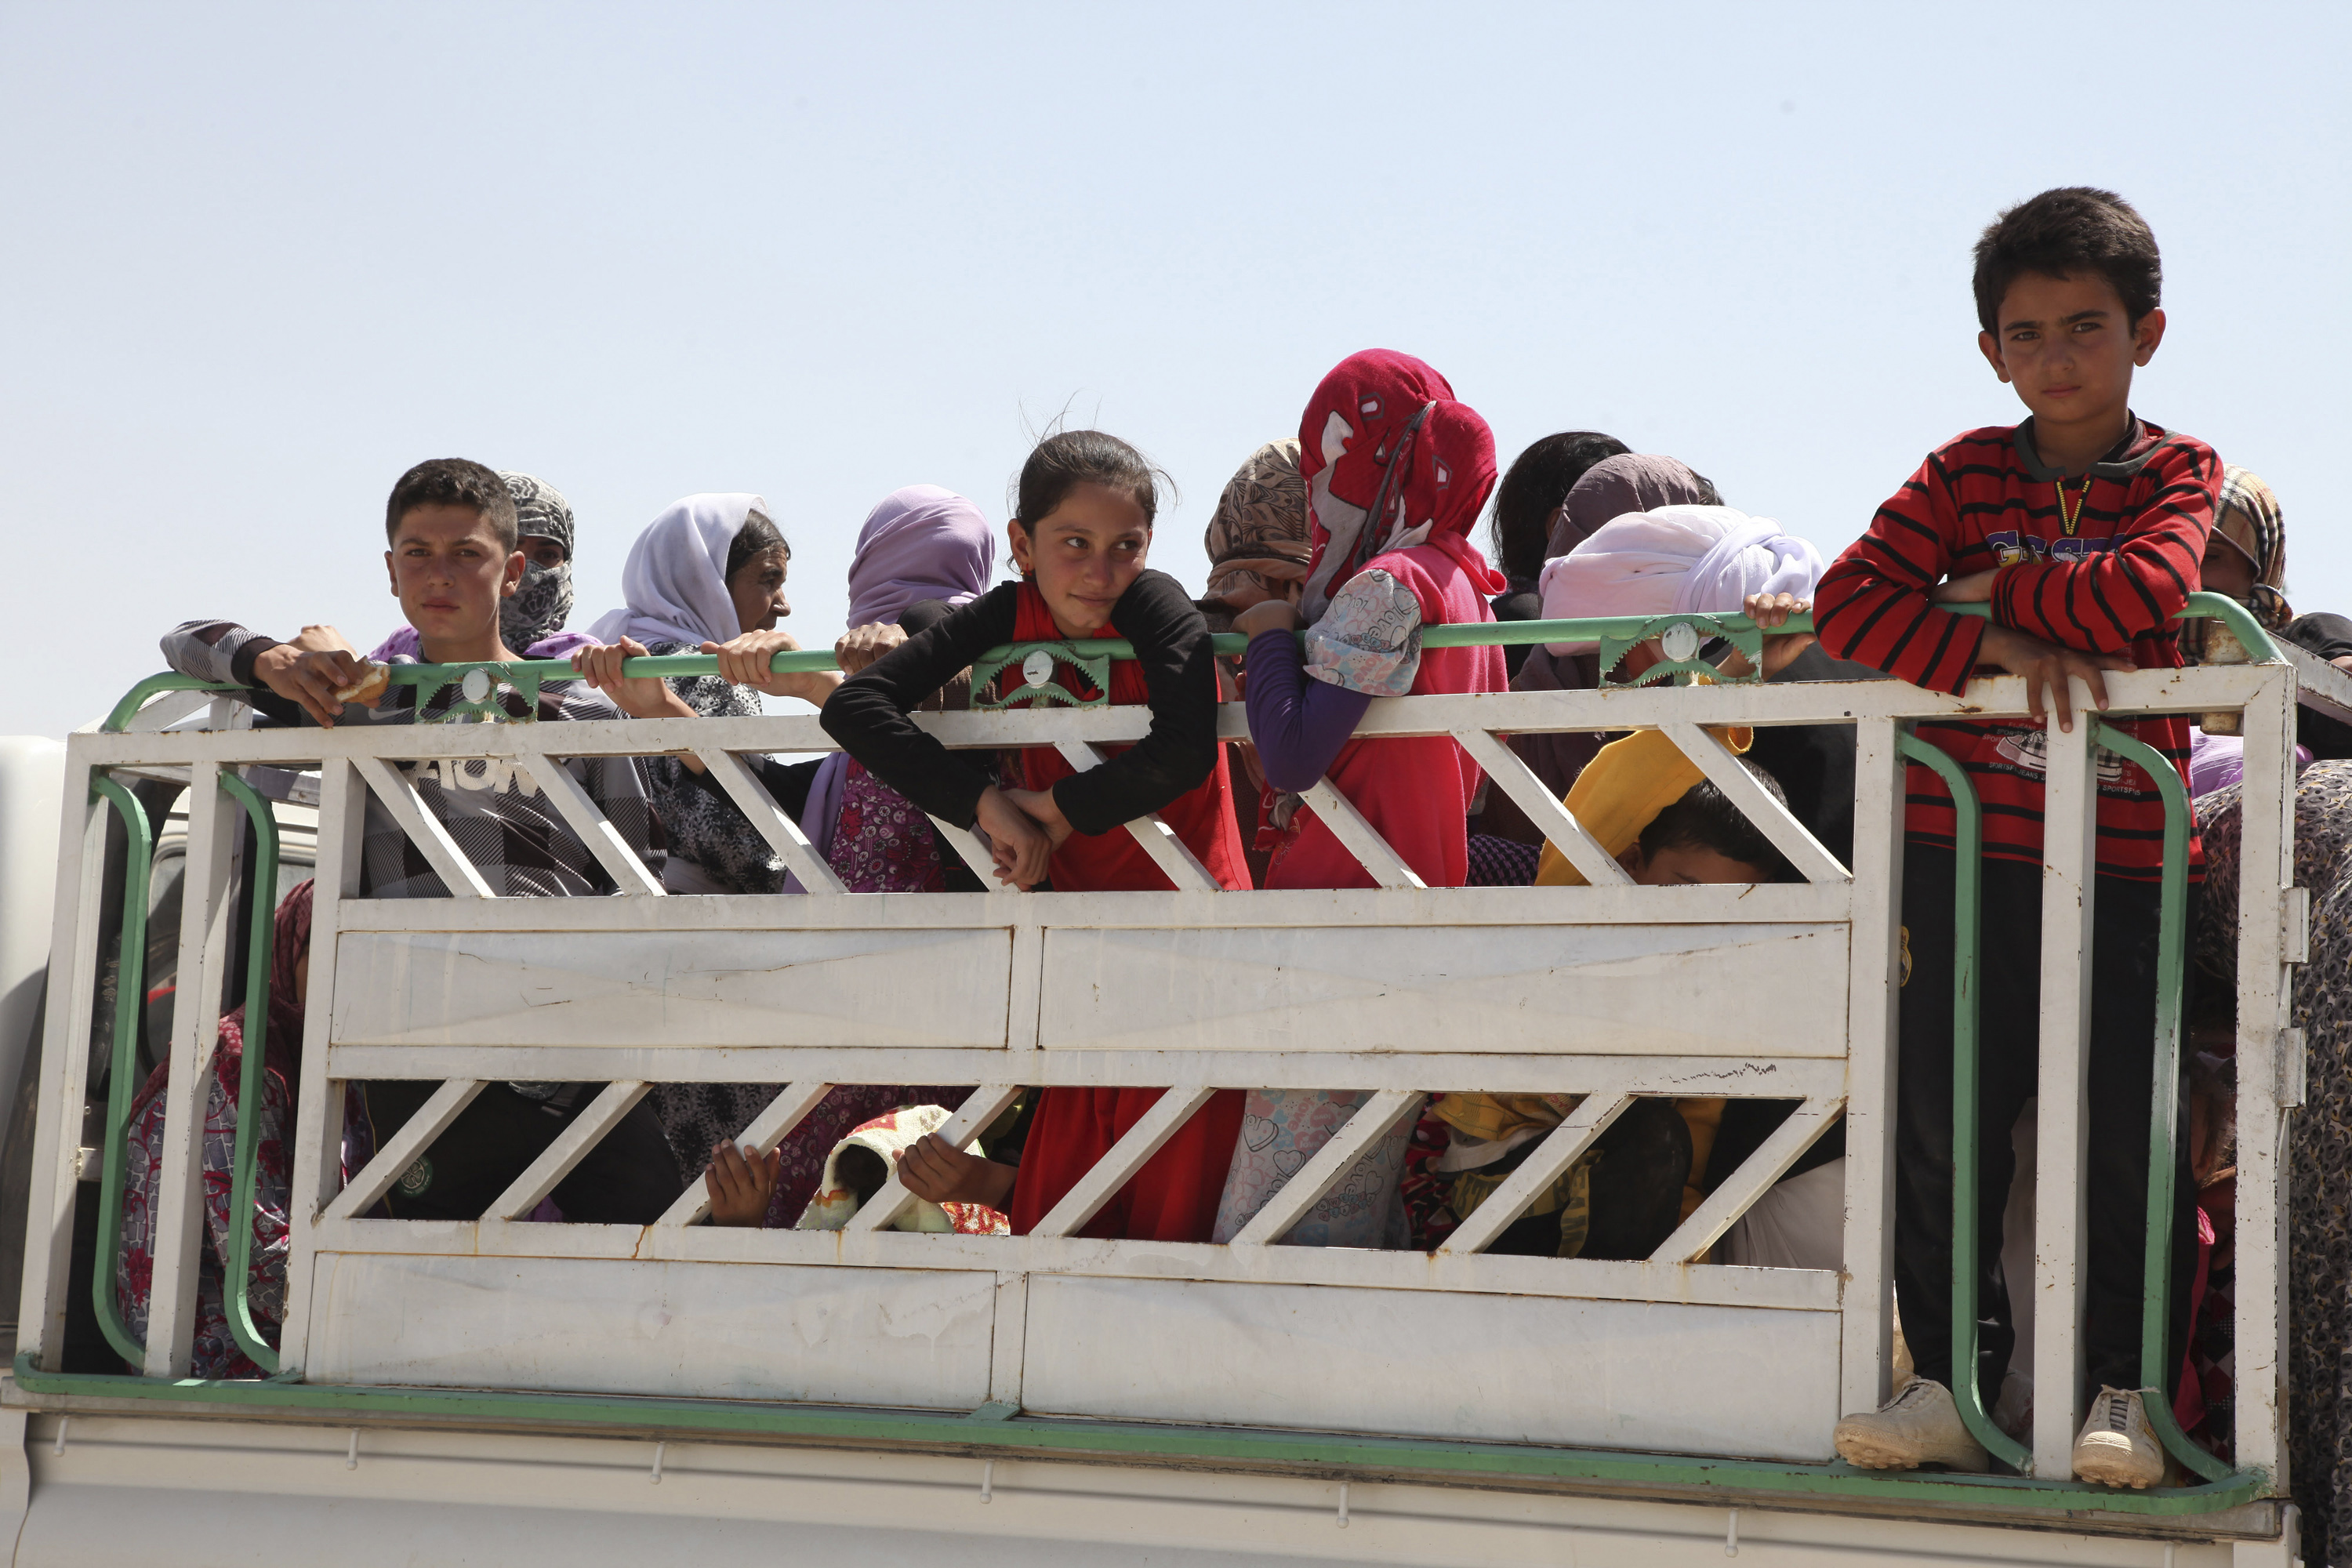 Displaced families from the minority Yazidi sect flee violence in the northern Iraqi town of Sinjar. Iraq's Prime Minister, Nuri al-Malik, ordered his air force for the first time to back Kurdish forces against Islamic State fighters after the Sunni milit